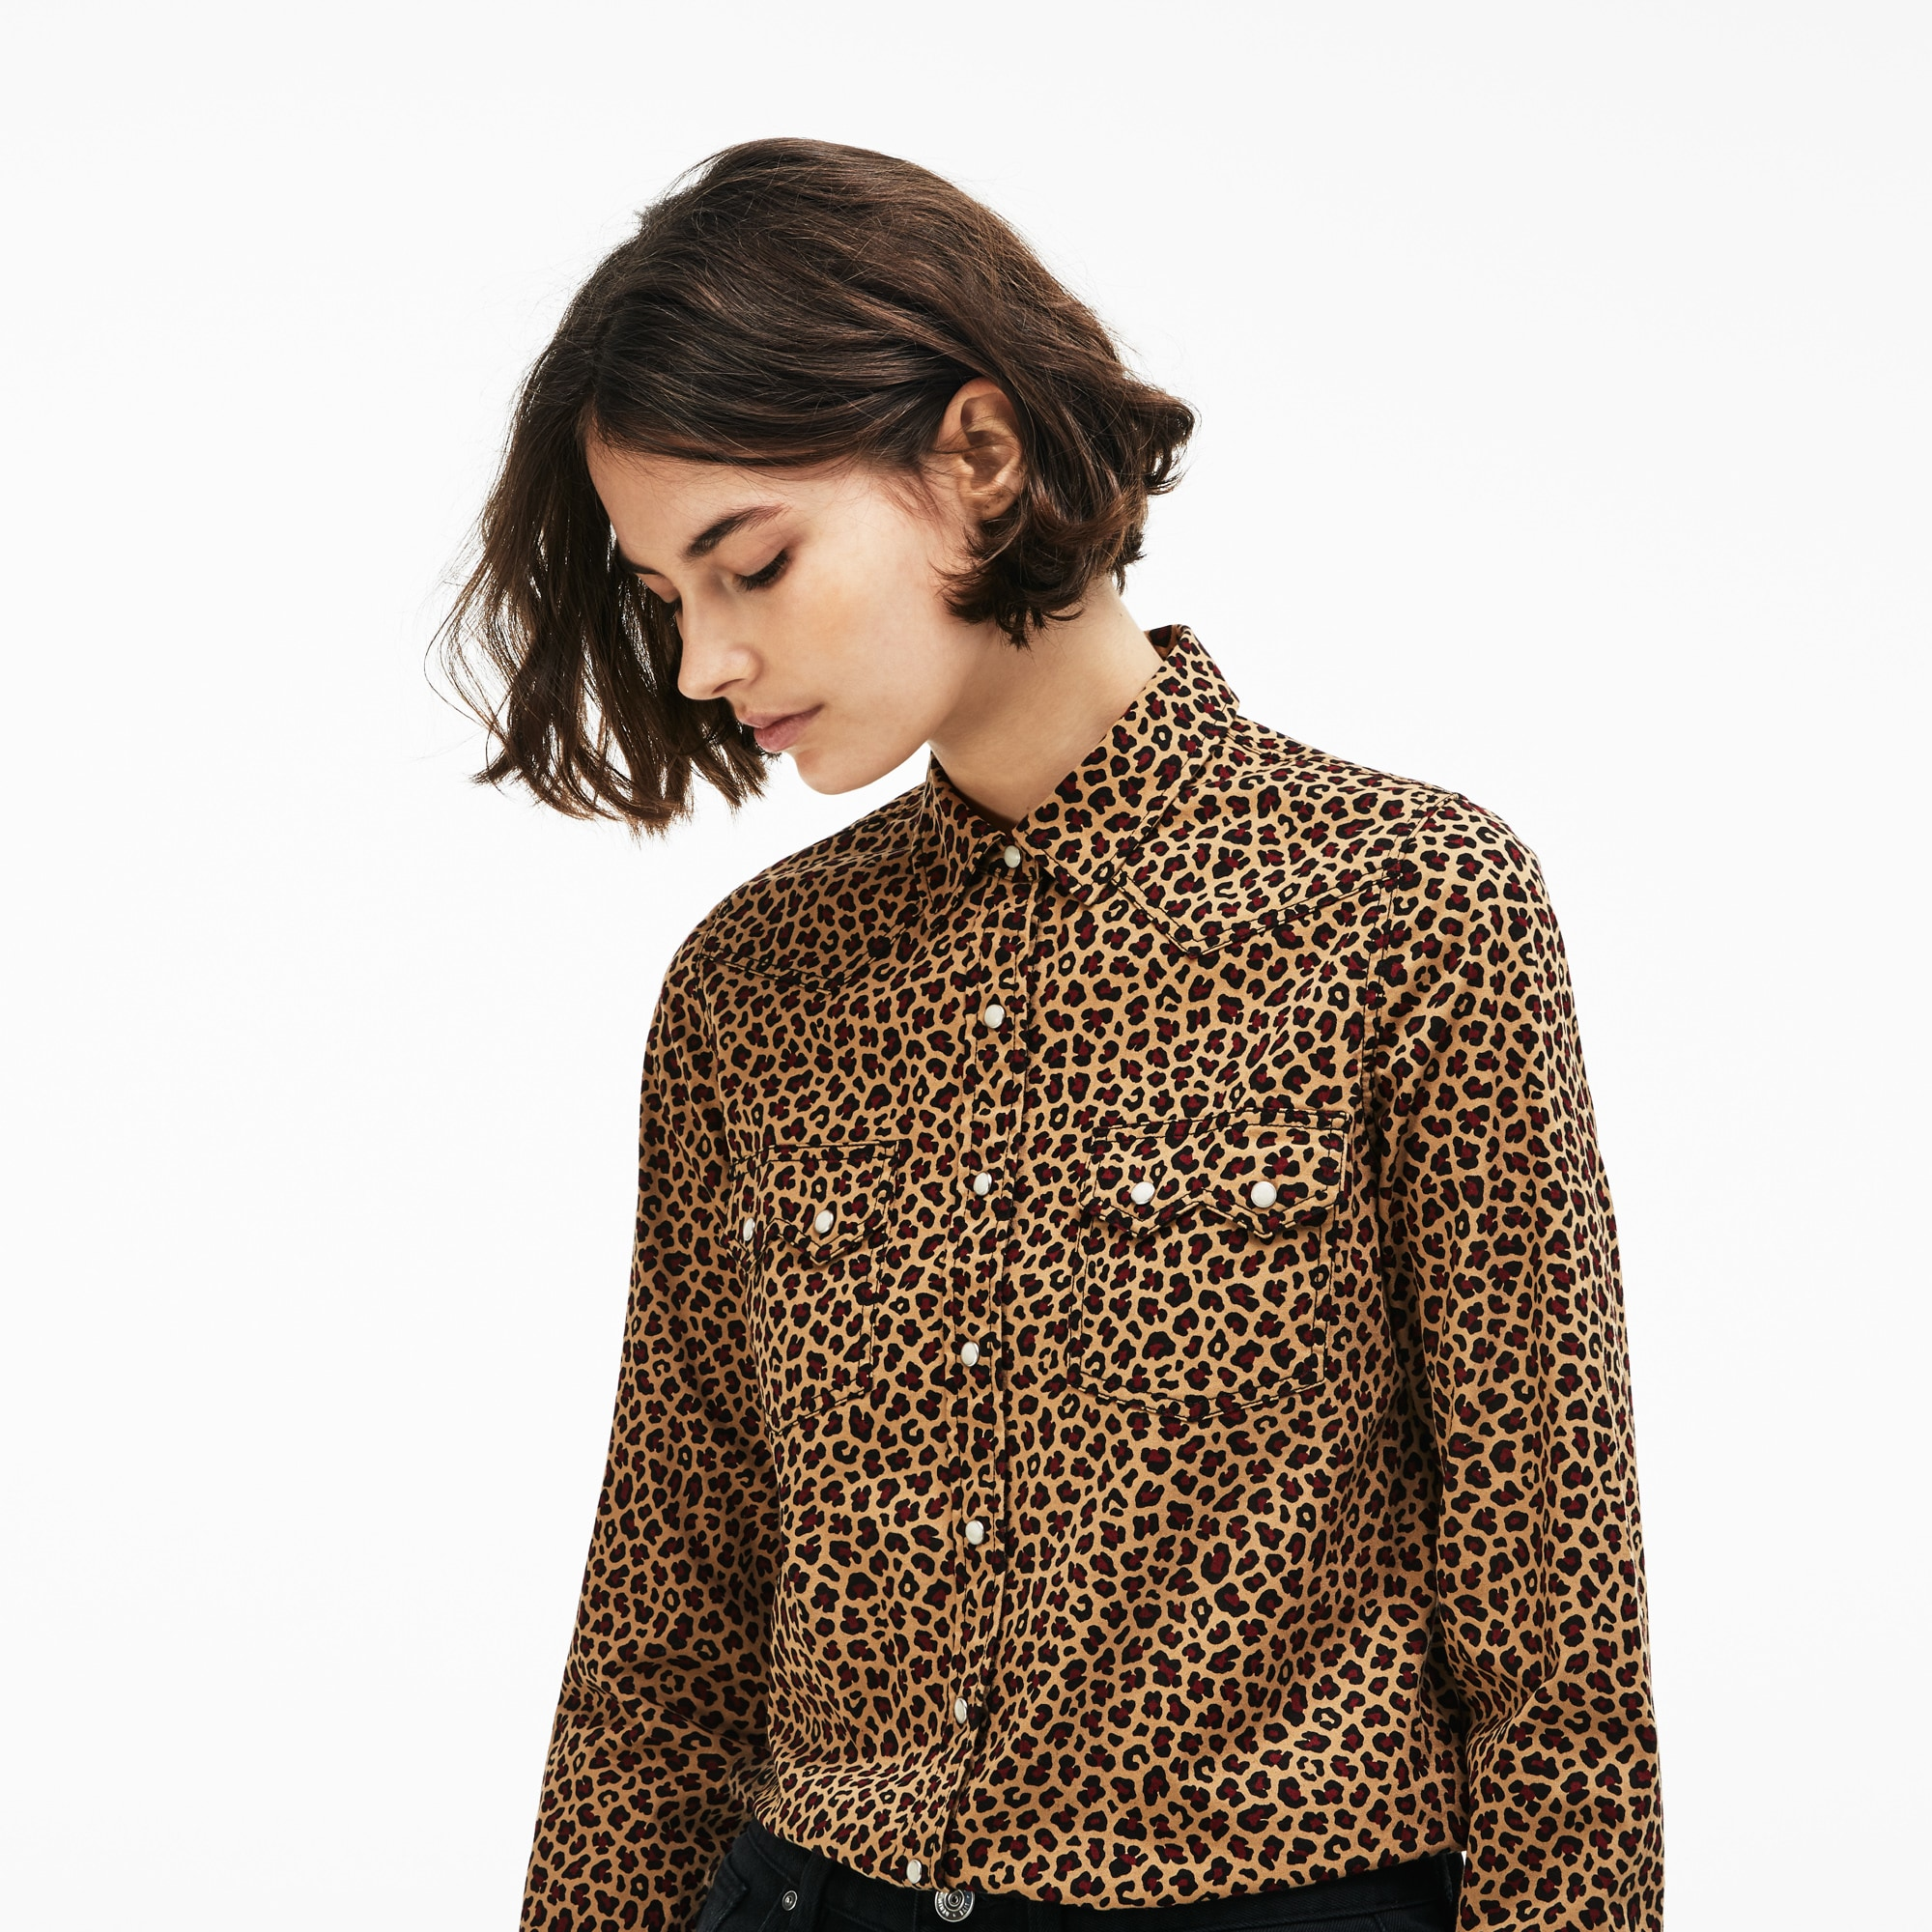 Women's Lacoste LIVE Slim Fit Leopard Print Stretch Twill Shirt